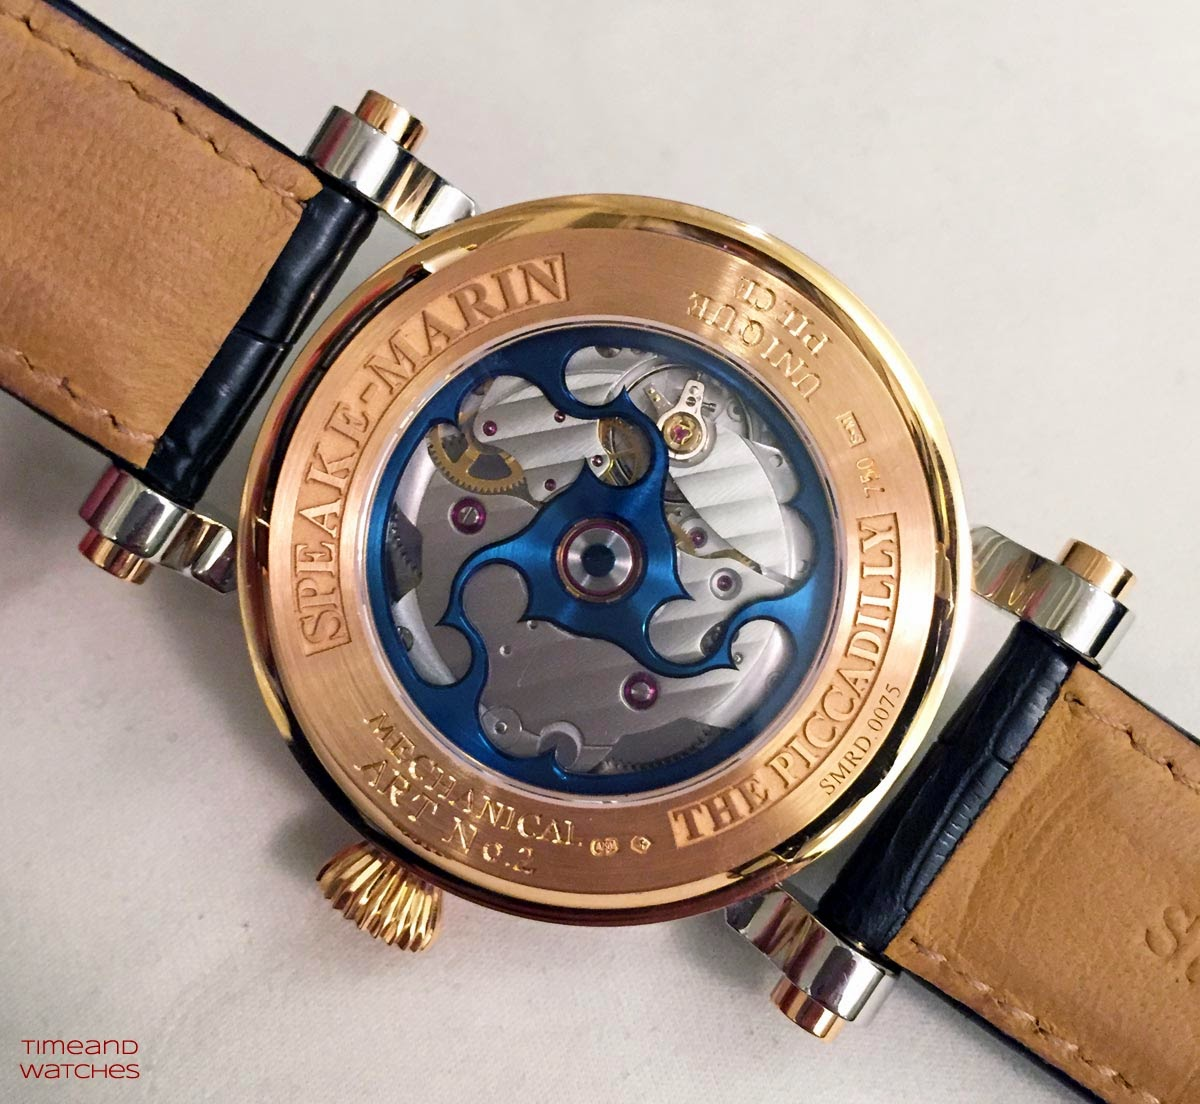 speake marin jumping hours time and watches. Black Bedroom Furniture Sets. Home Design Ideas